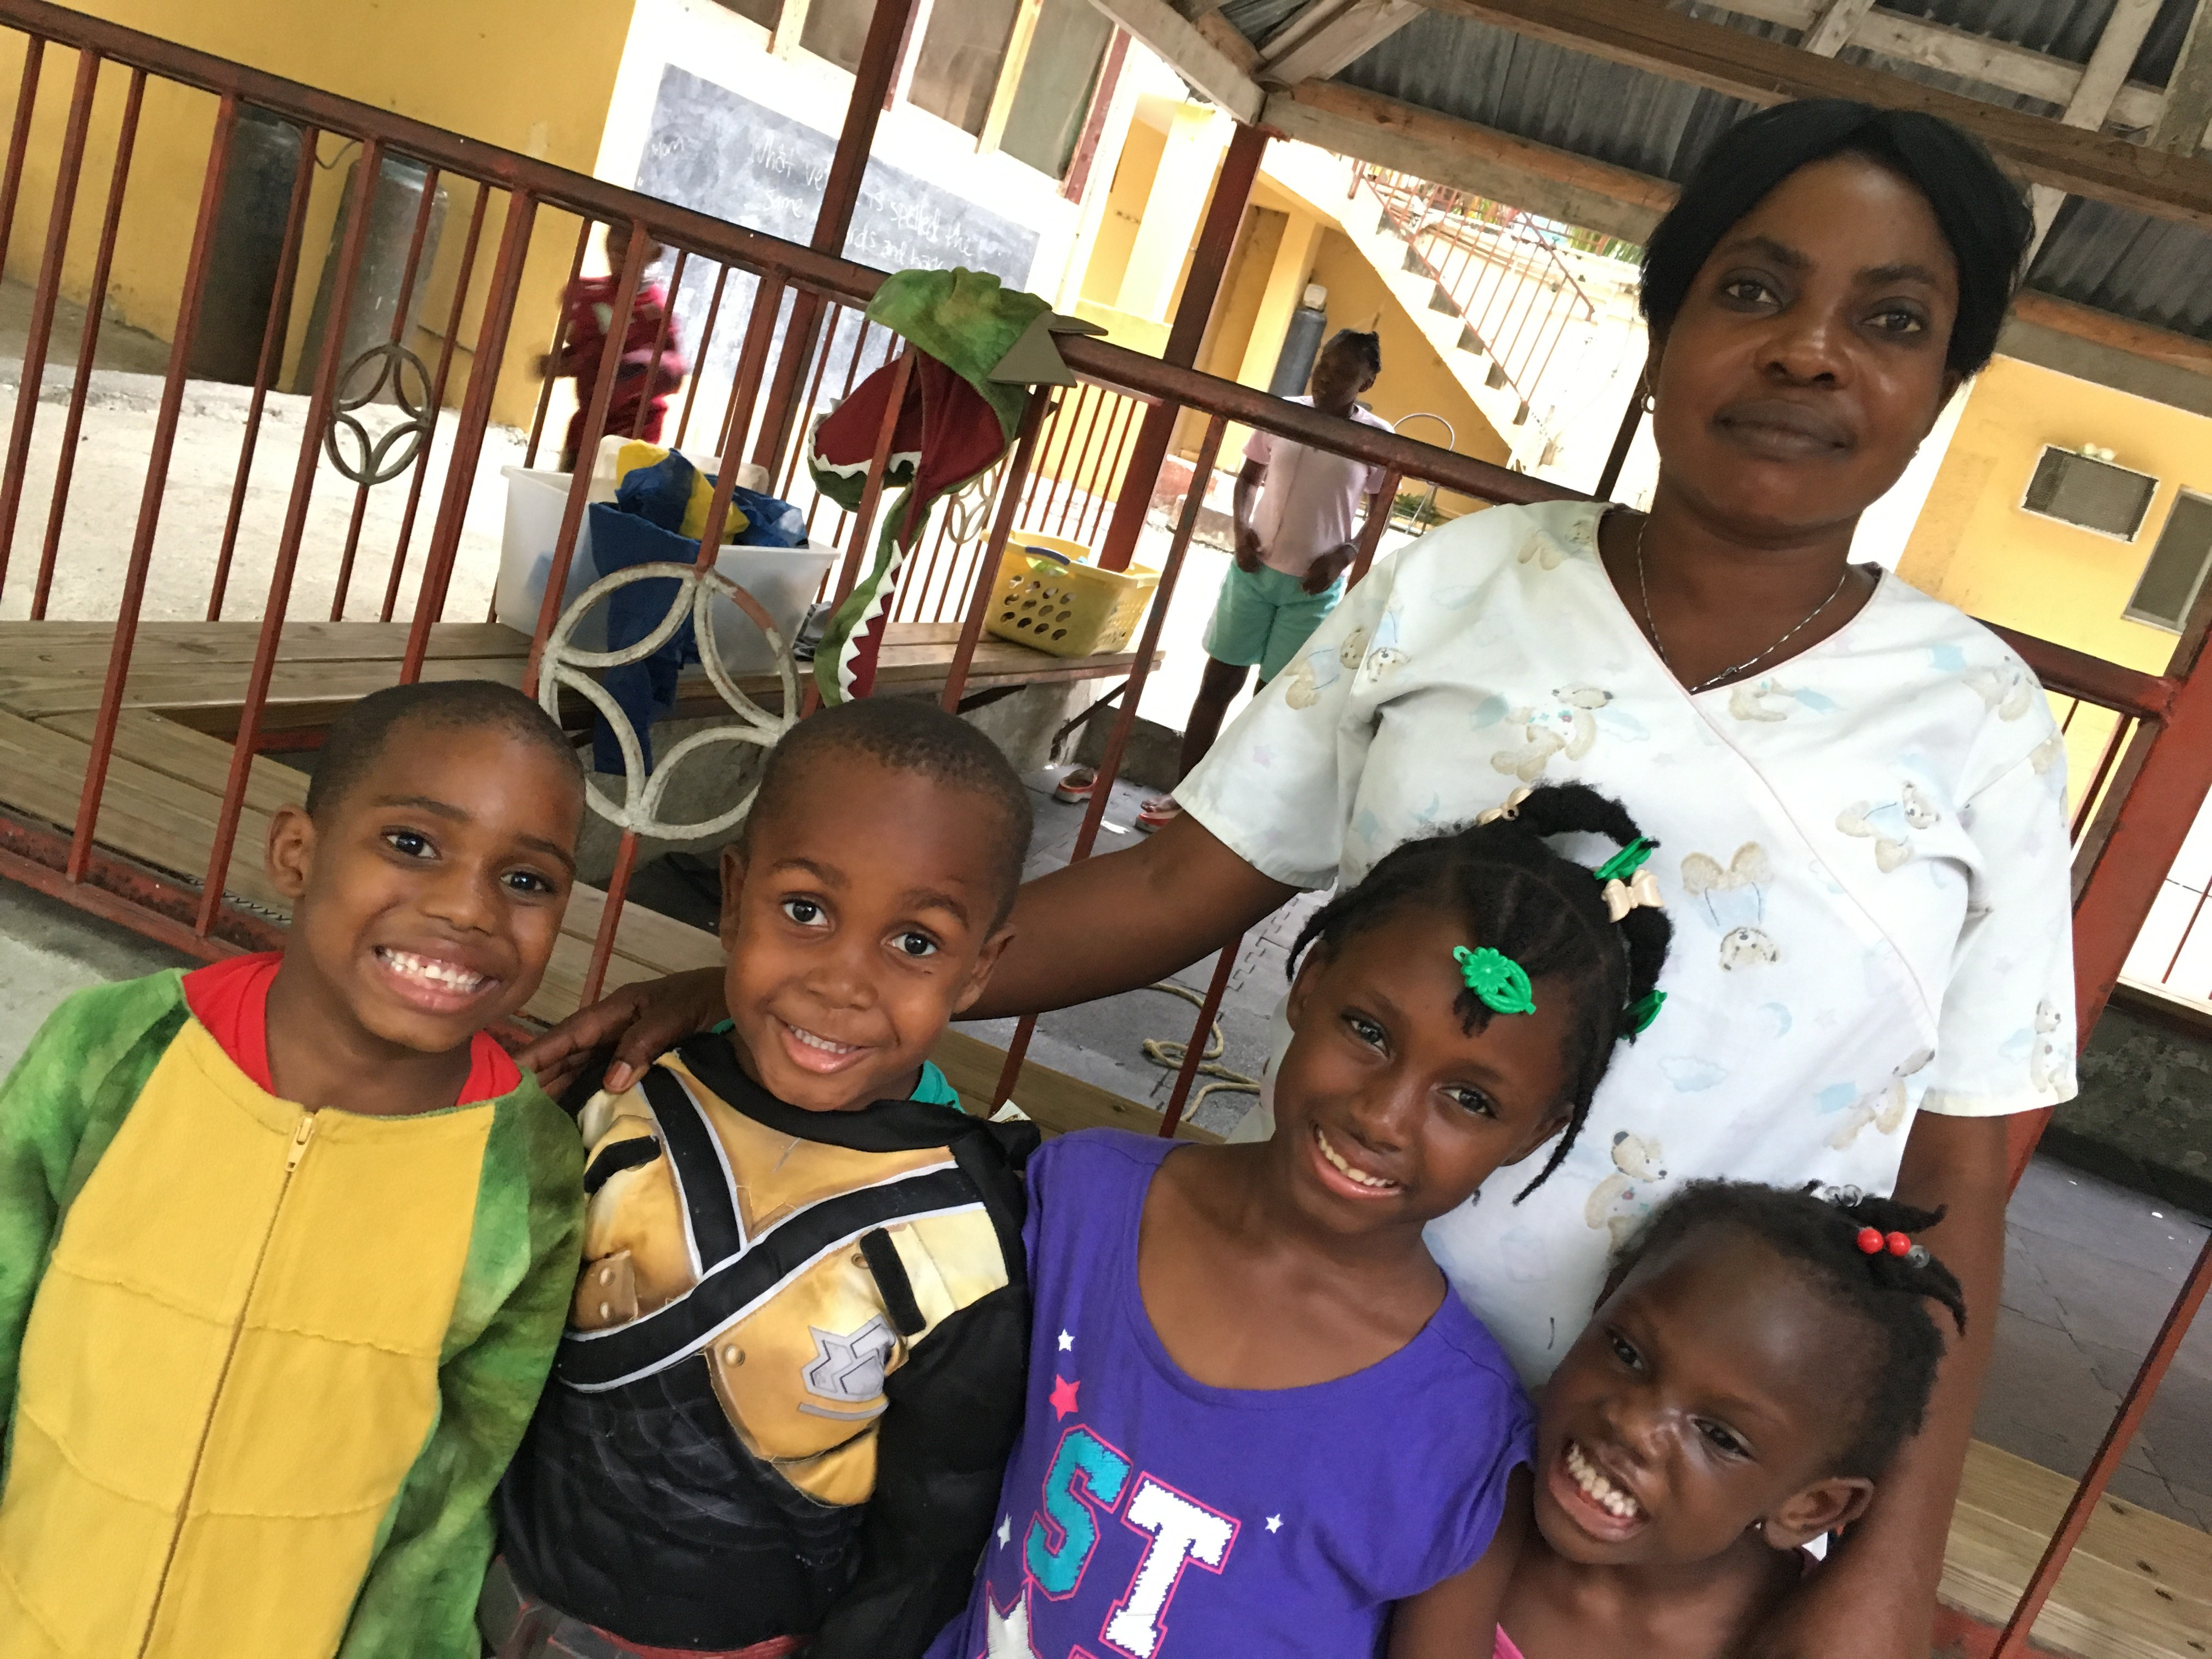 Michou Tousaint, 28, a nanny at the Have Faith Haiti Mission, with some of the children there. She says her entire farming family outside of Jeremie lost their homes and crops and is now sleeping outside, including a 2 month old baby wrapped in coconut leaves.